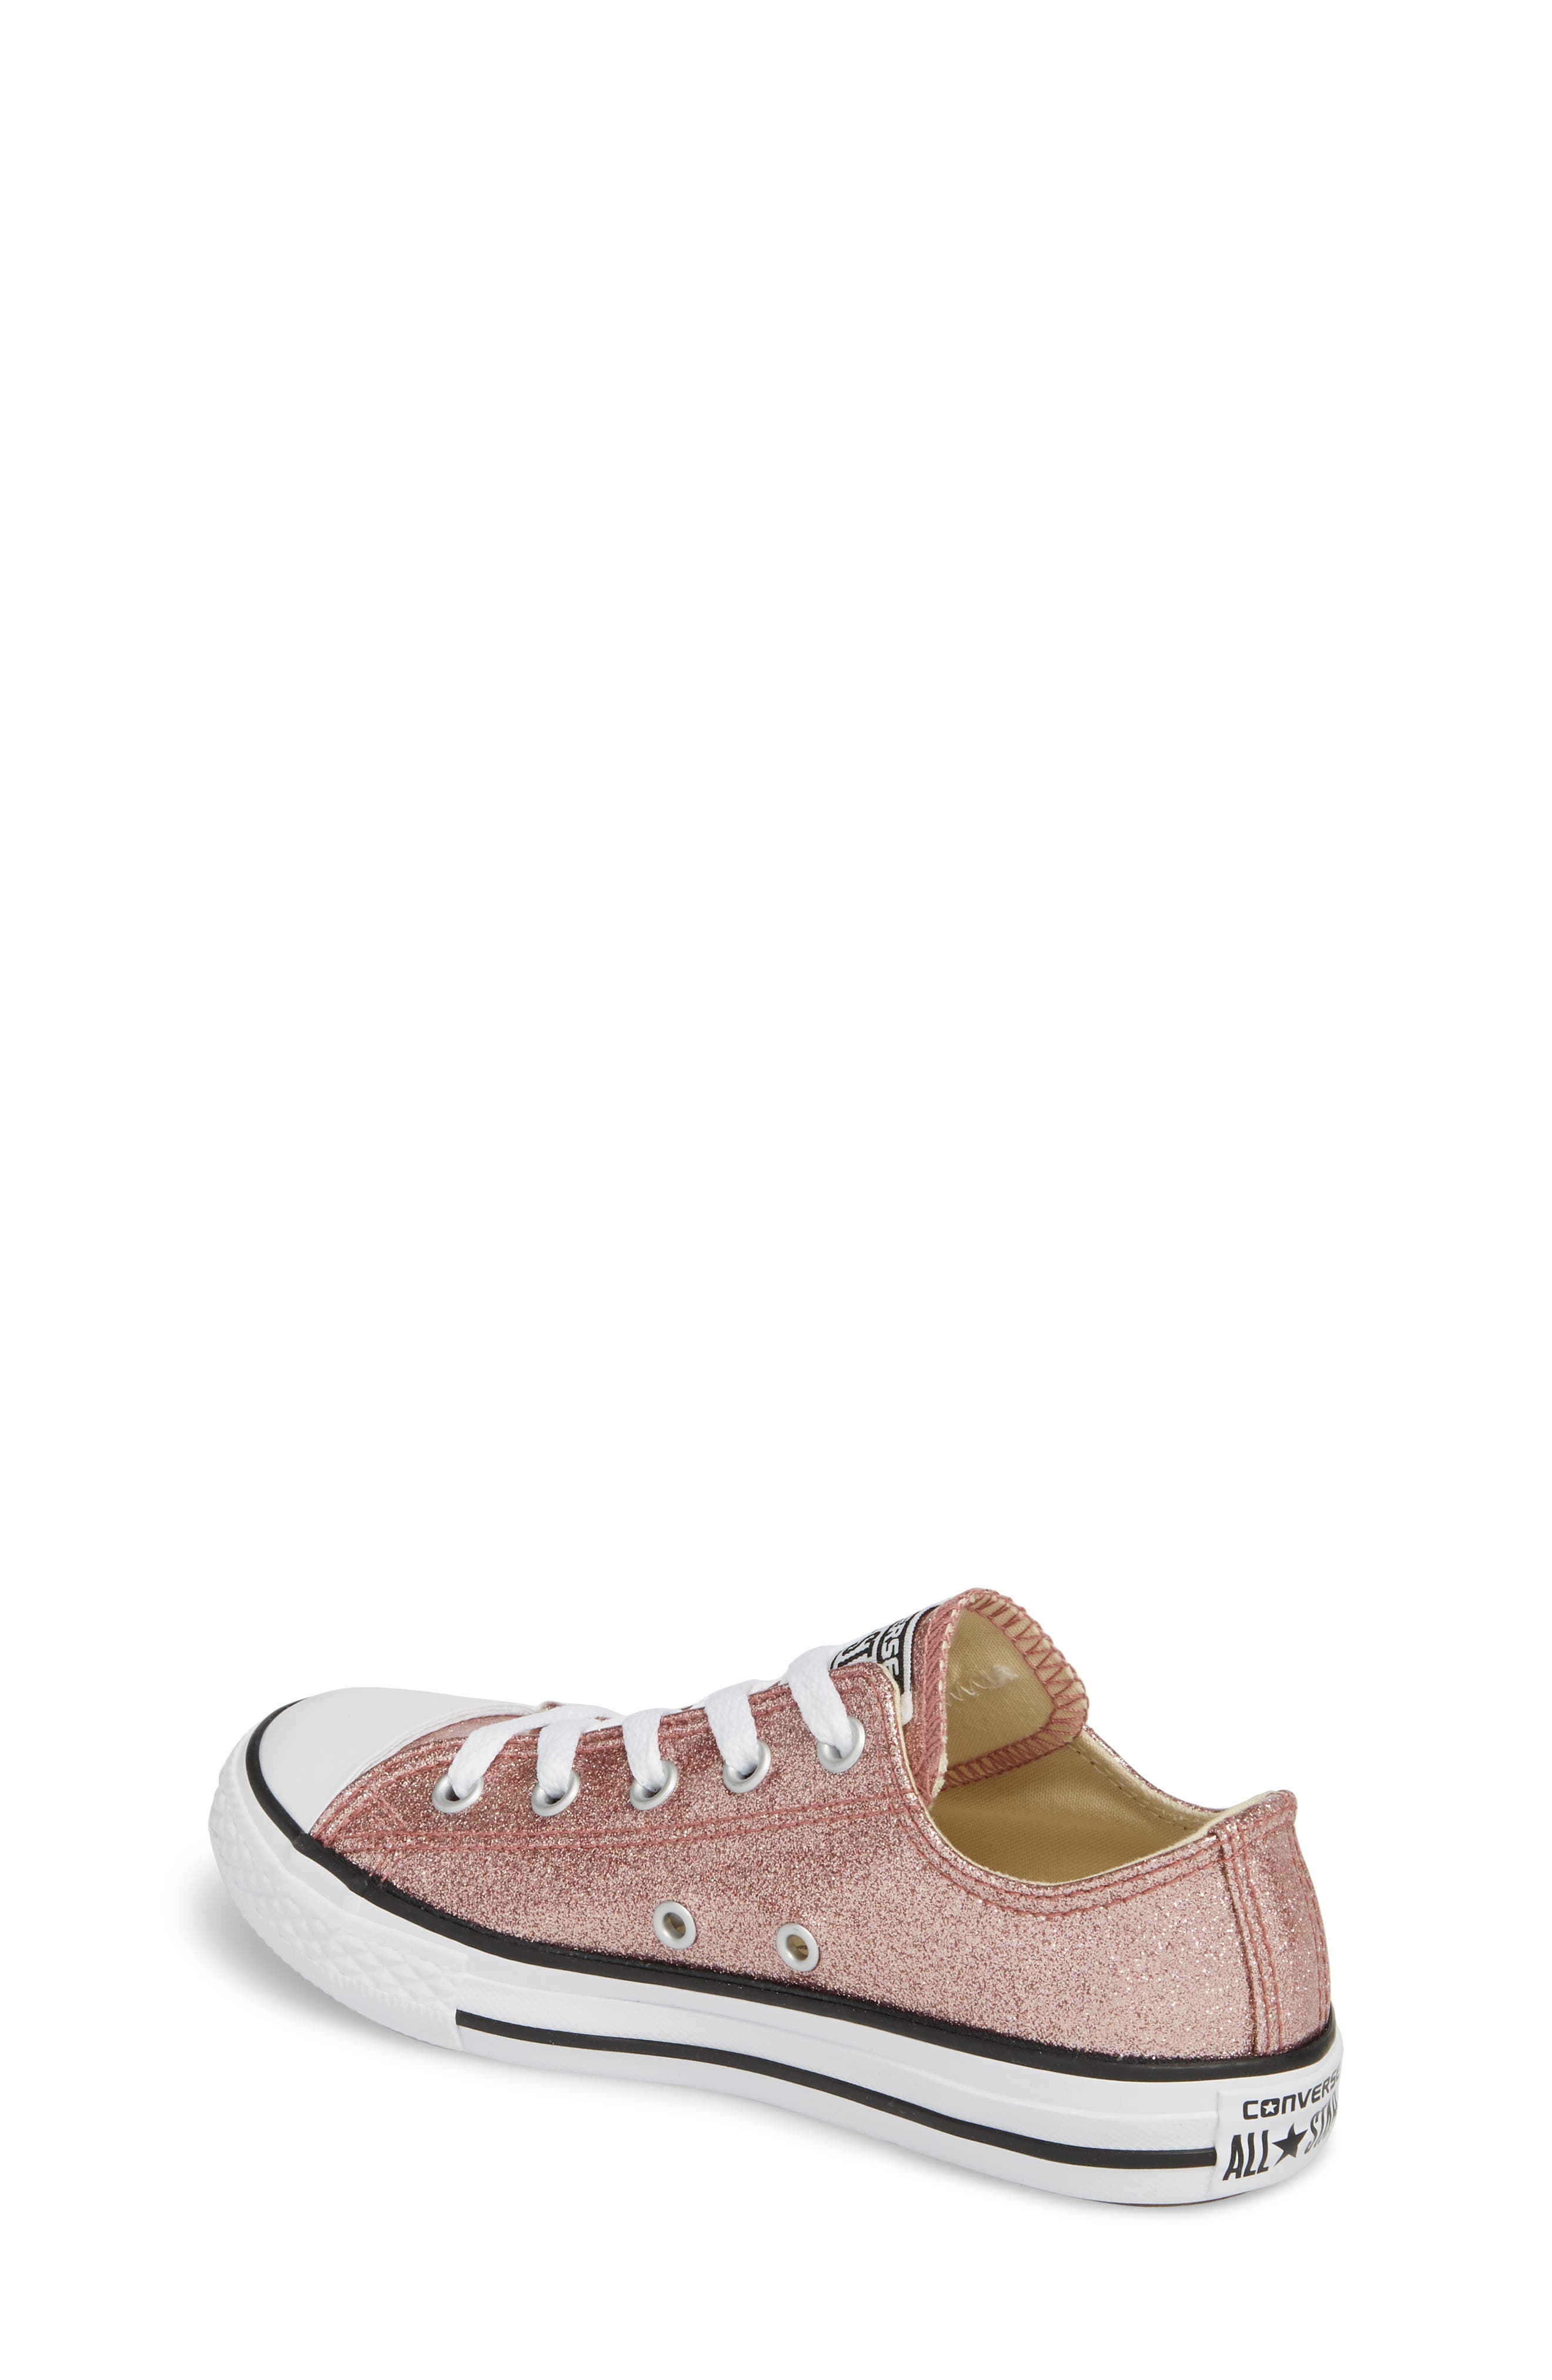 Chuck Taylor<sup>®</sup> All Star<sup>®</sup> Glitter Slip-On,                             Alternate thumbnail 2, color,                             Rose Gold